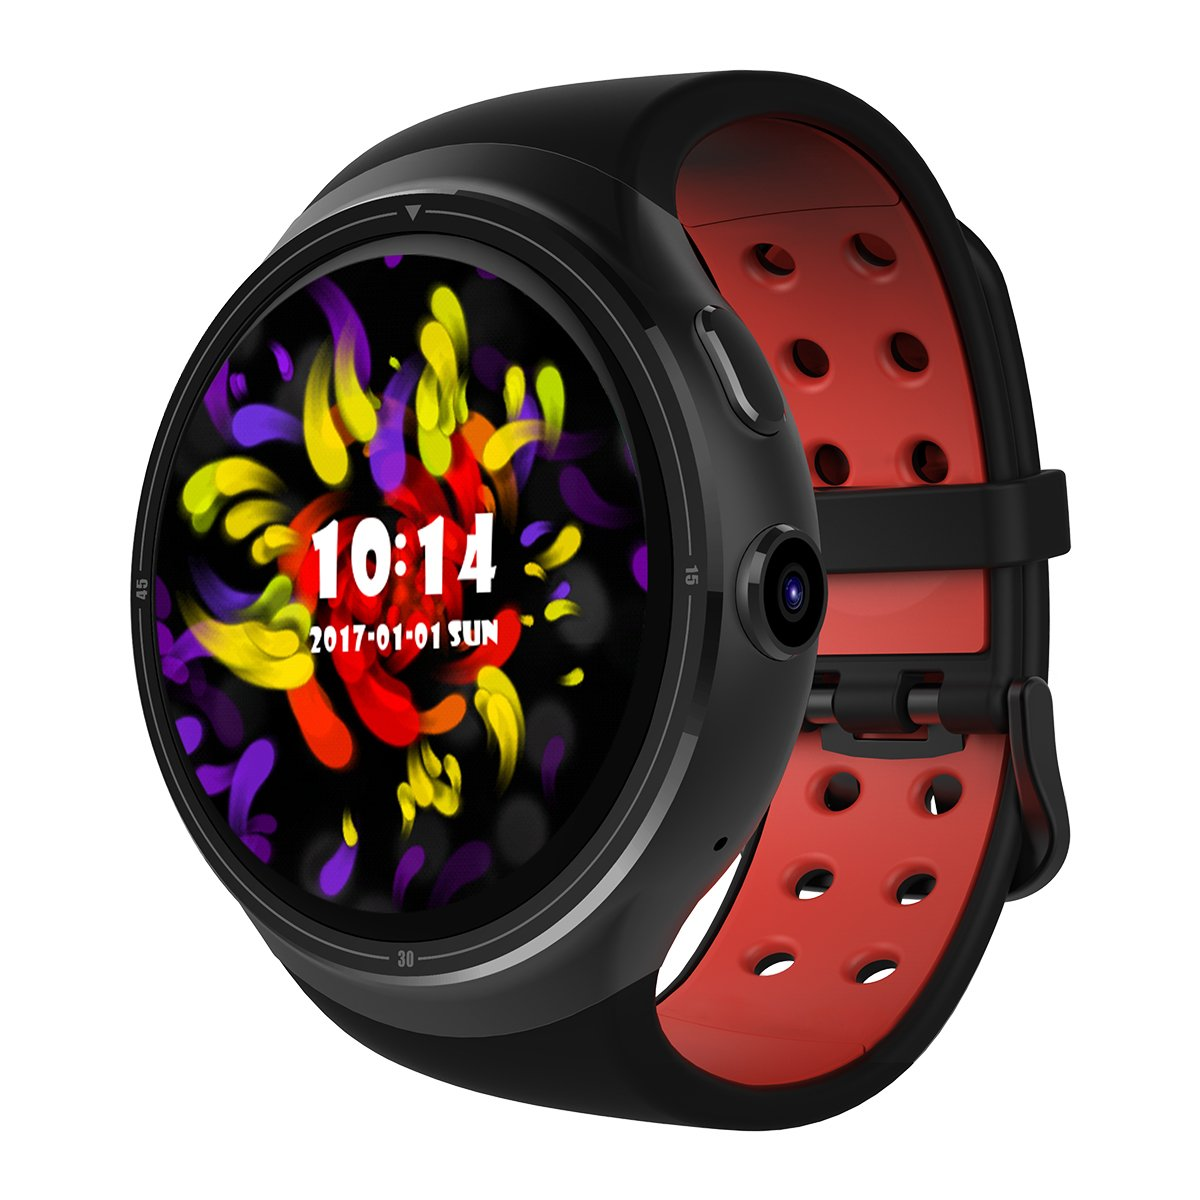 Diggro DI06 Smart Watch Android 5.1 Bluetooth MTK6580 3G WCDMA 1.0GHZ Quad Core RAM1GB+ROM16GB 2.0MP Camera Support Nano SIM Card GPS WIFI Heart Rate Monitor Pedometer Health Reminder for Android IOS